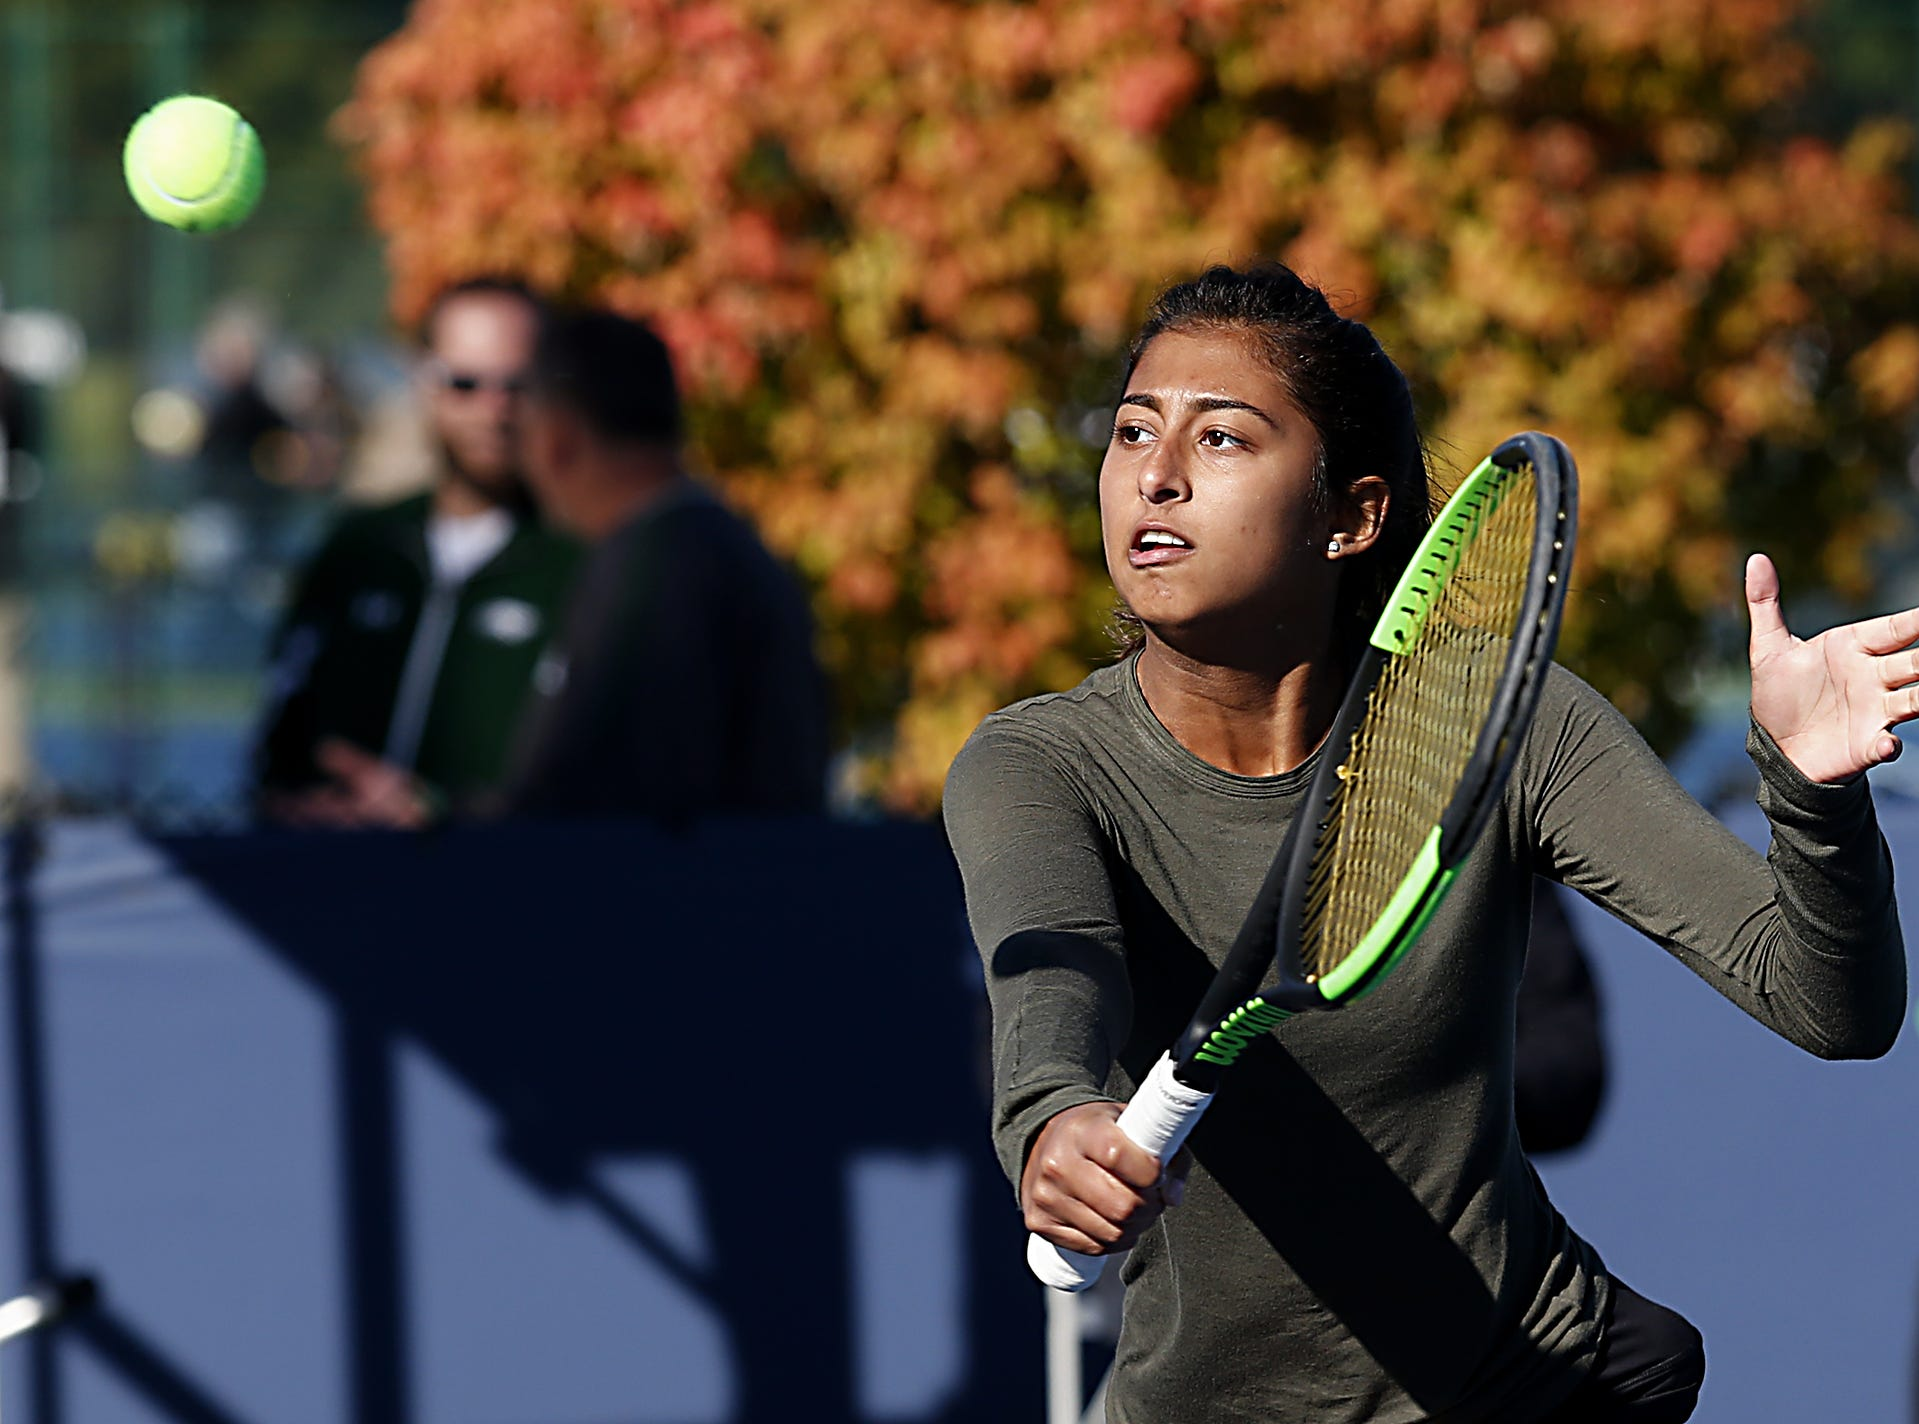 Ursuline's Nina Dhaliwal returns a volley during the Division I doubles bracket at the Lindner Family Tennis Center in Mason Friday, Oct. 19, 2018.